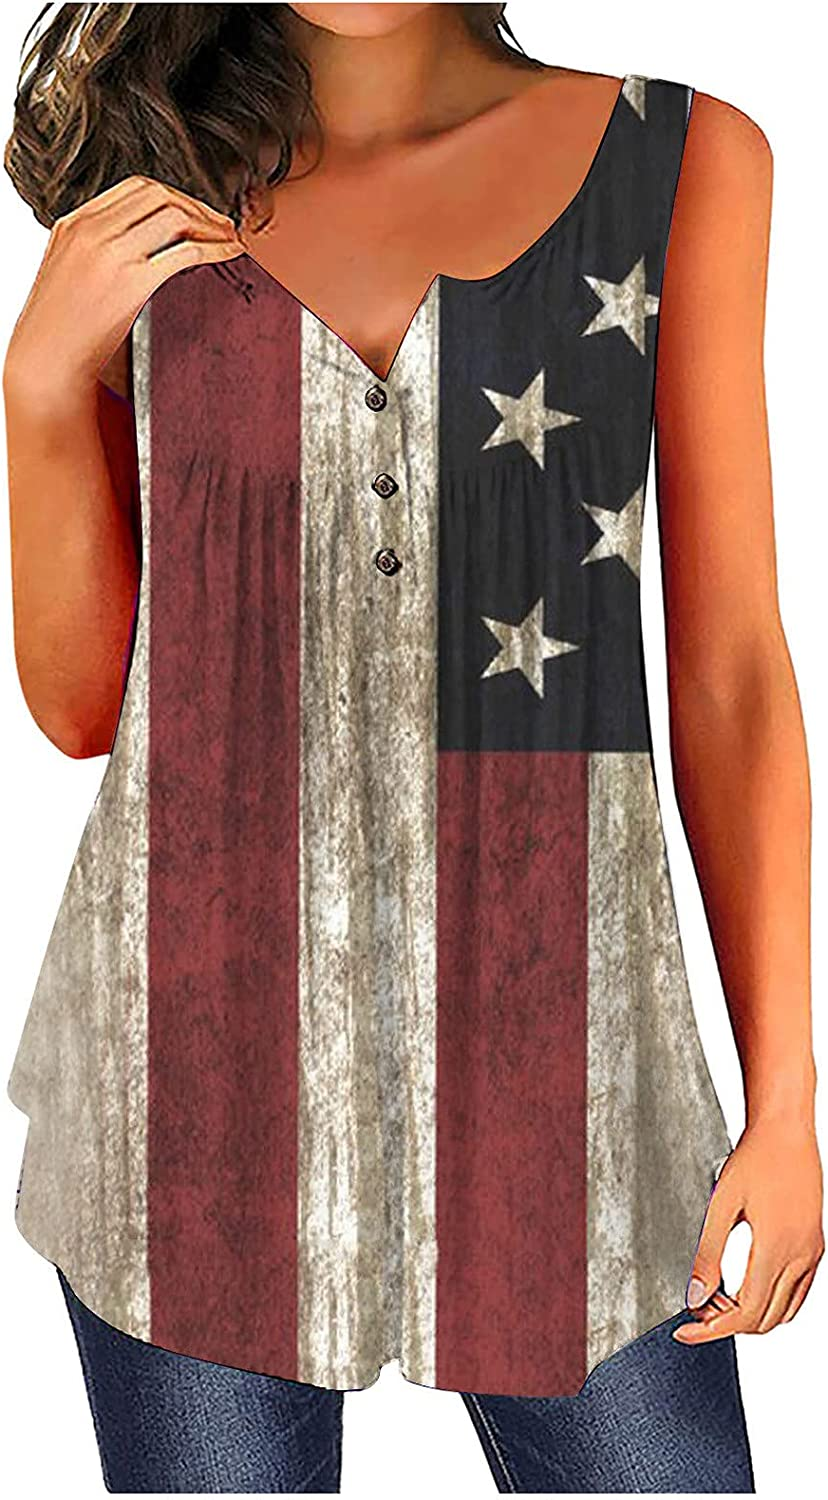 957 Independence Day Women Tank Tops Button Round Neck Sleeveless T Shirts America Flag Loose Printing Vest